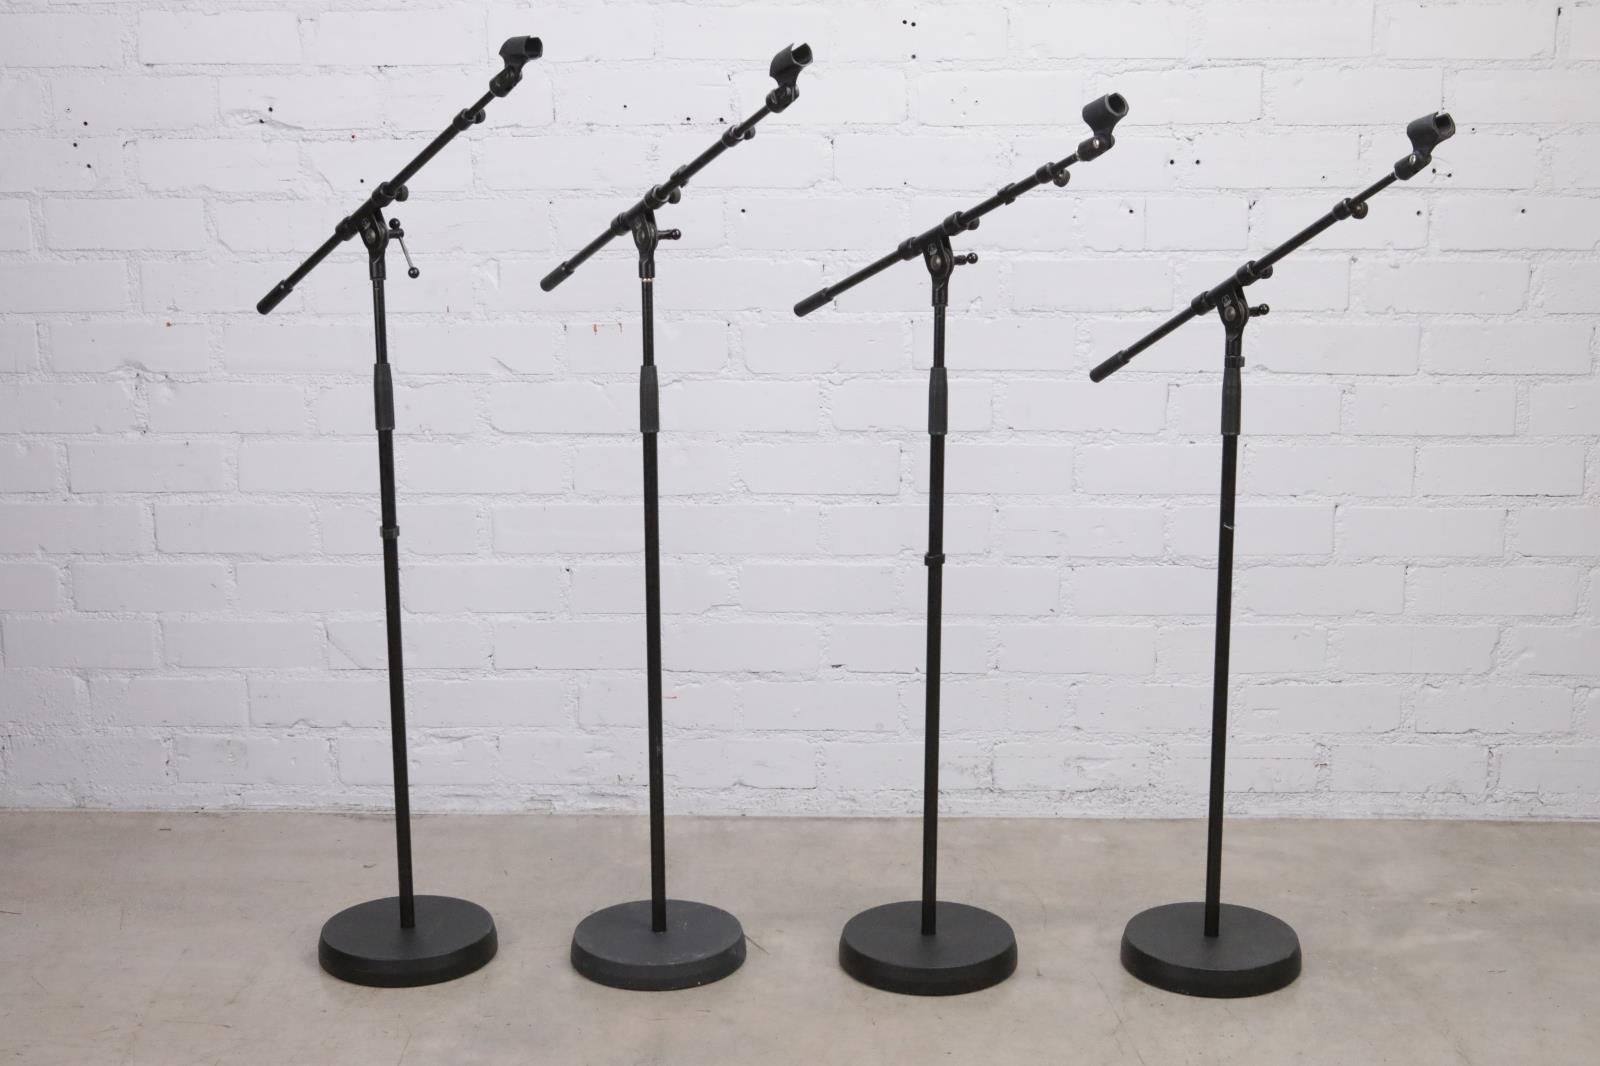 4 AKG Round Base Studio Mic Boom Stands w/ Cables Owned by David Roback #44664